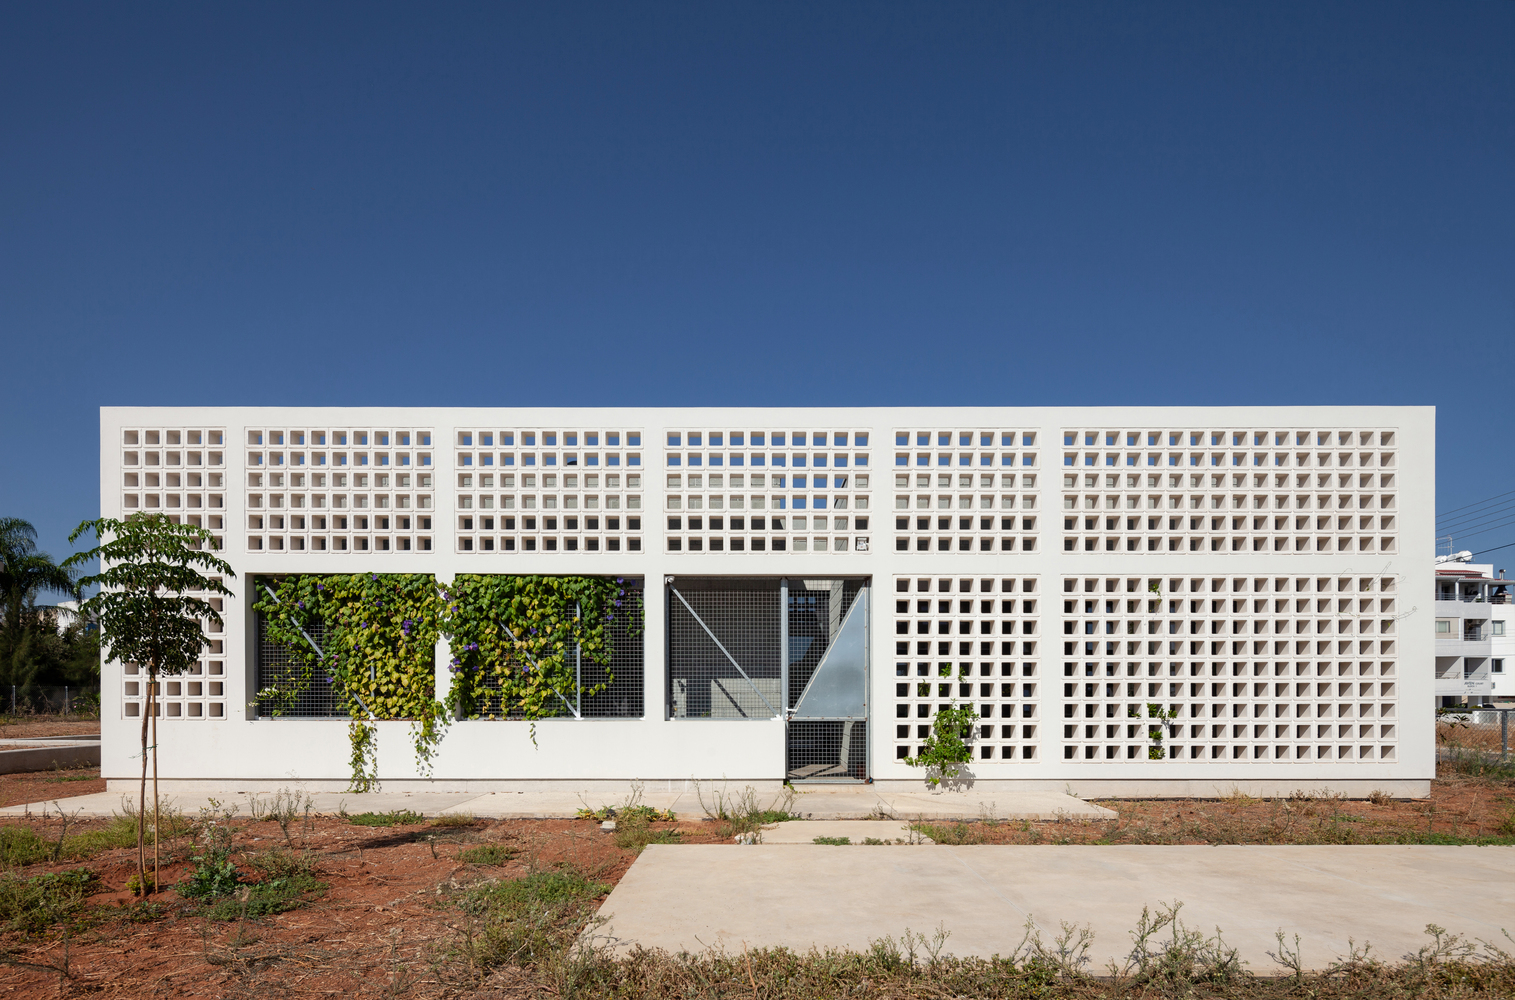 Single-story house with white concrete walls.